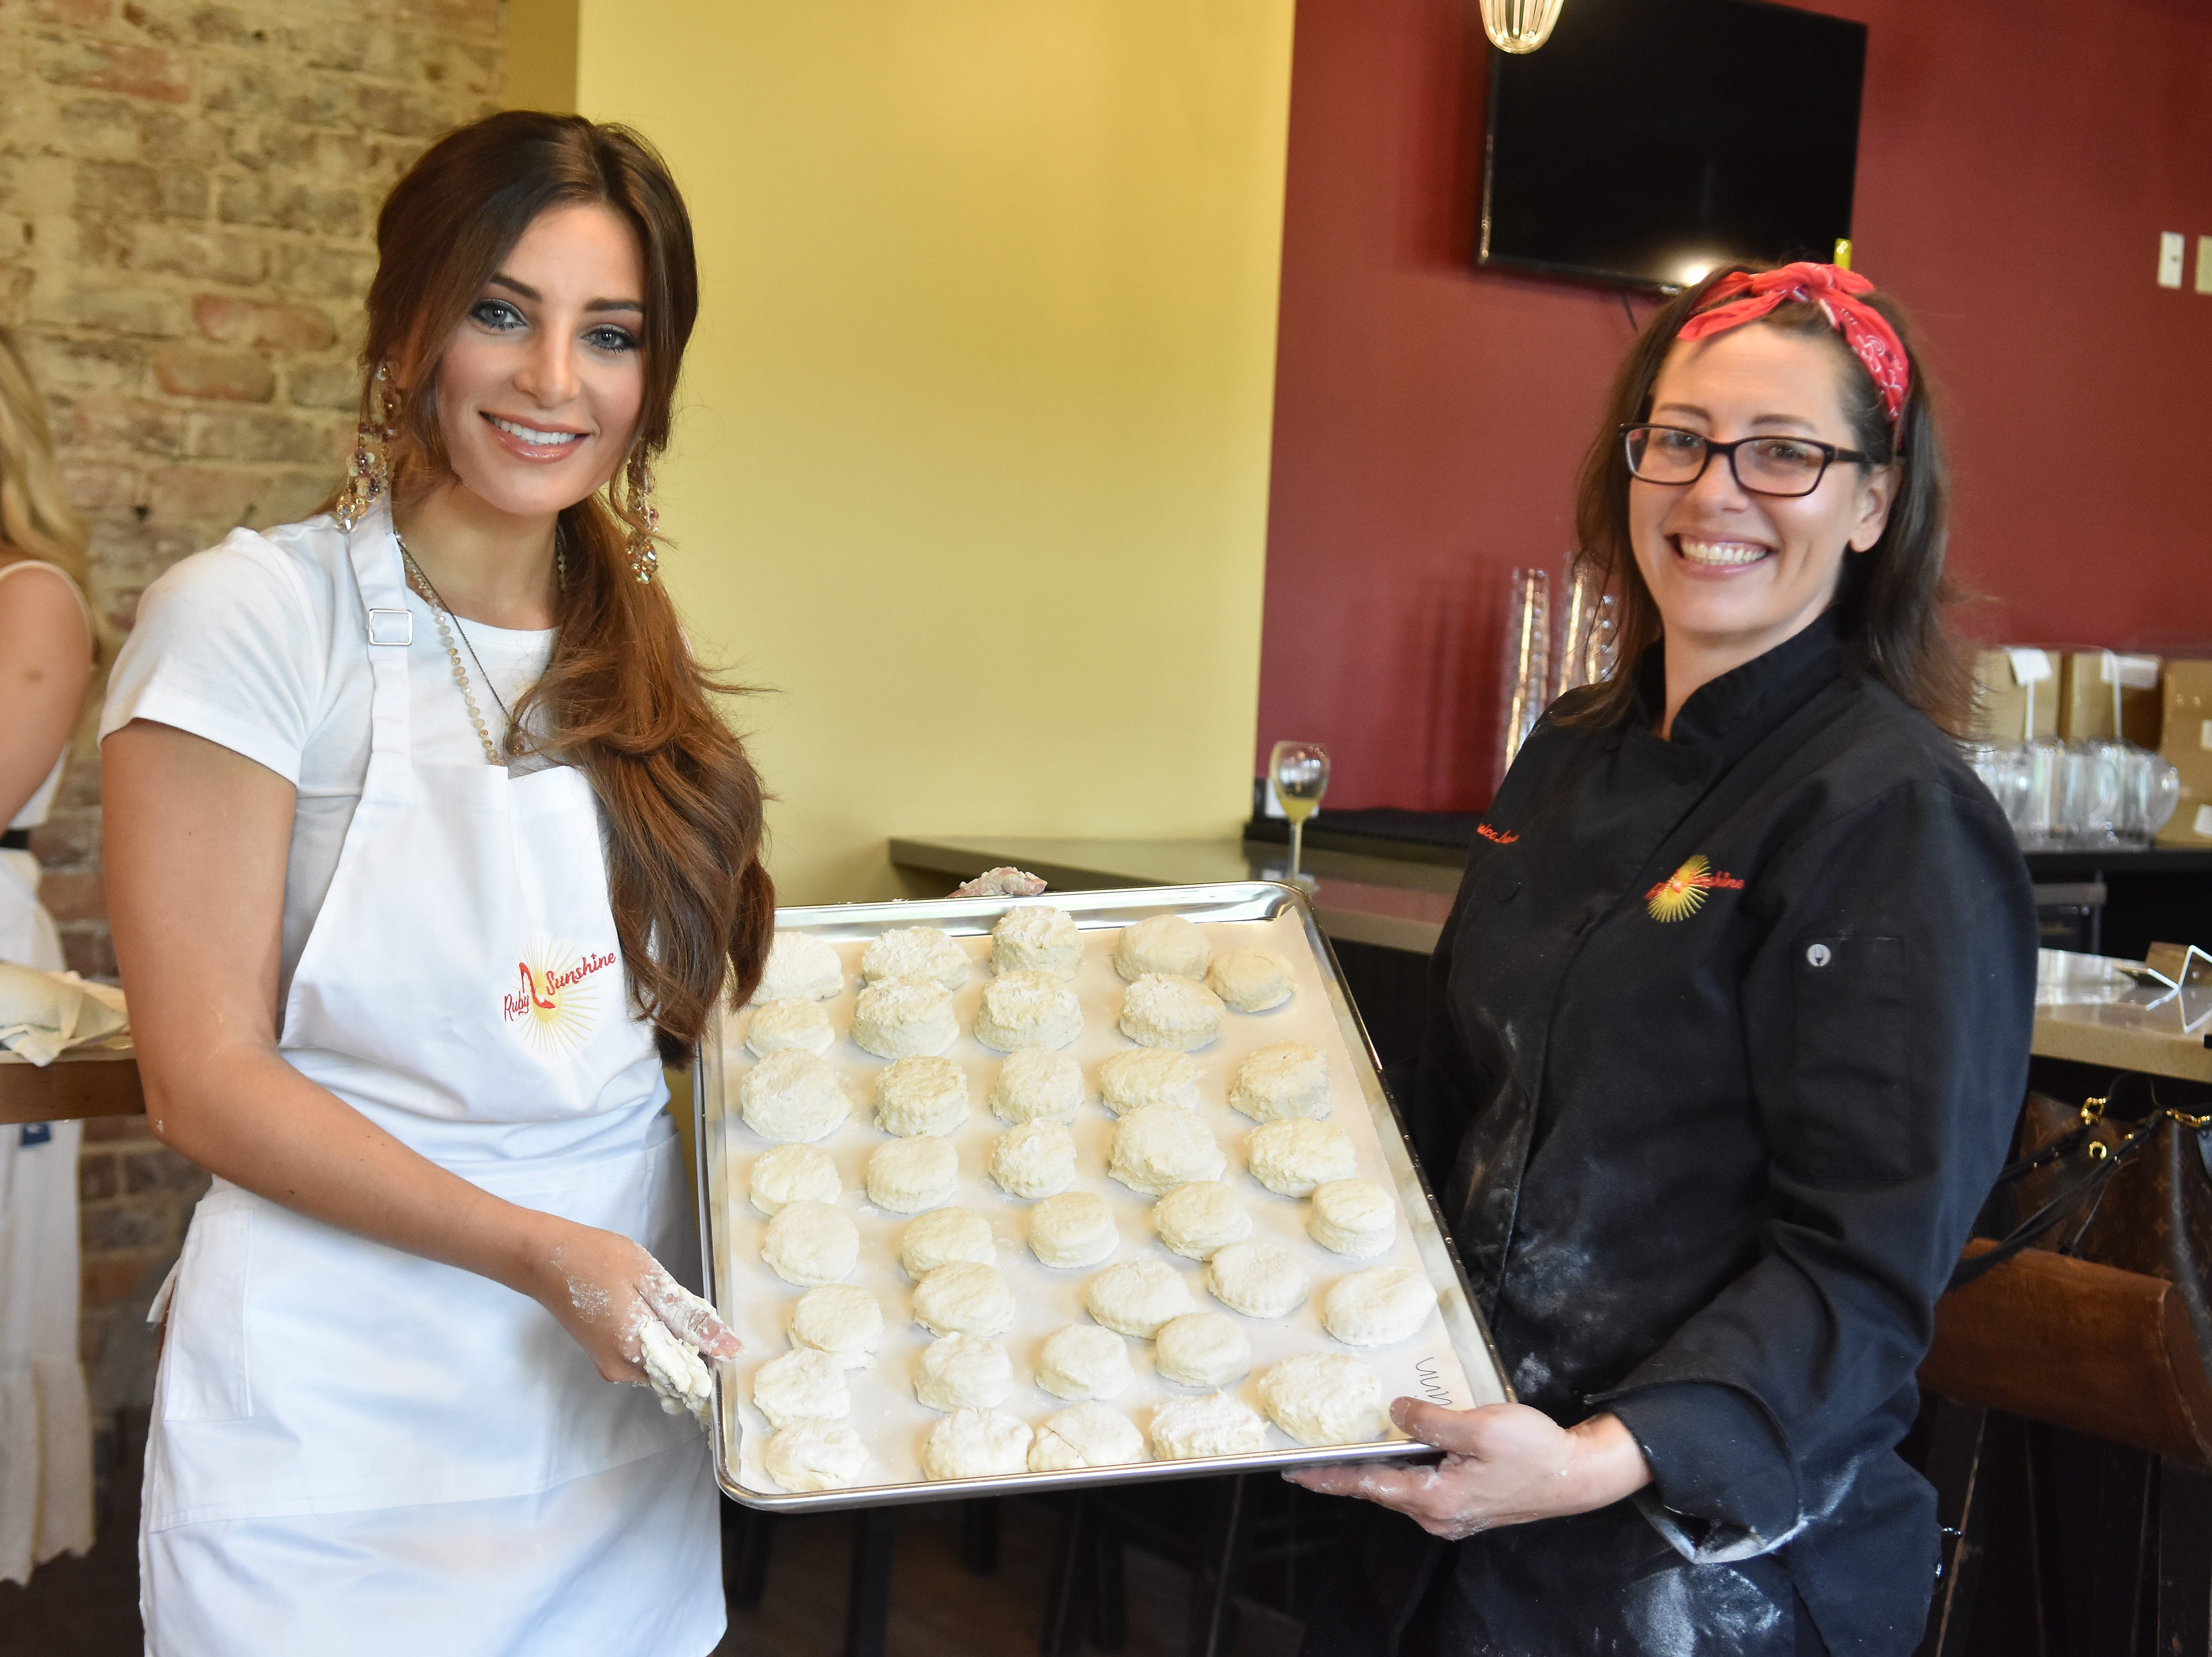 Azlinn Edwards and chef Monica Larousse show off a tray of biscuits that are ready for the oven.